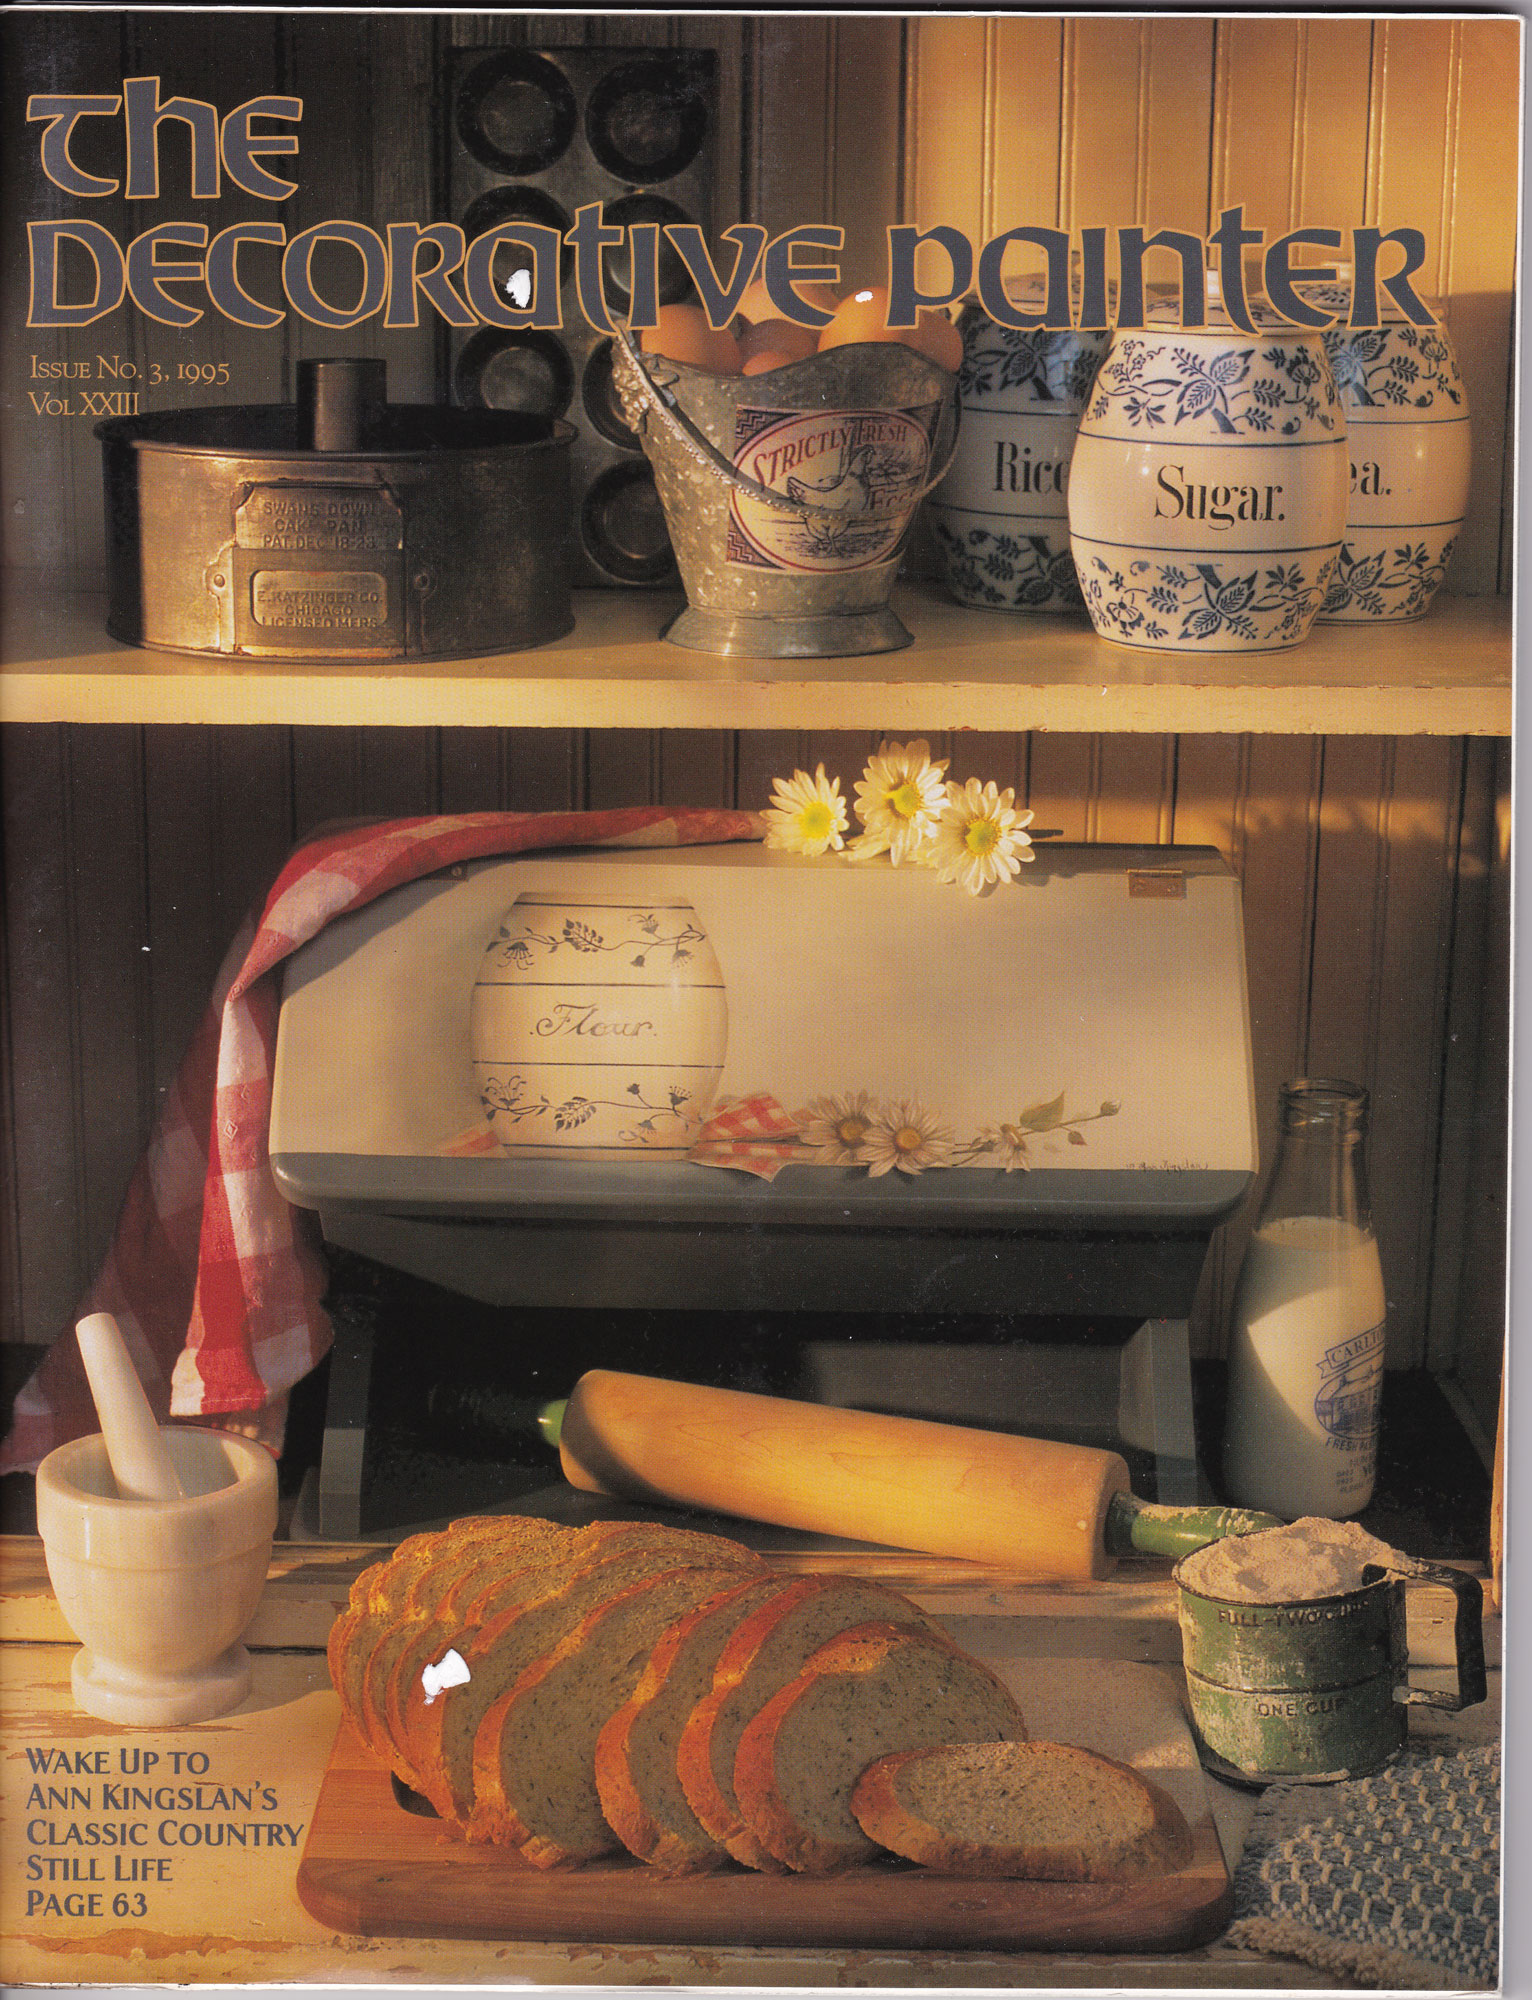 Magazine The decorative Painter - 1995 N°3